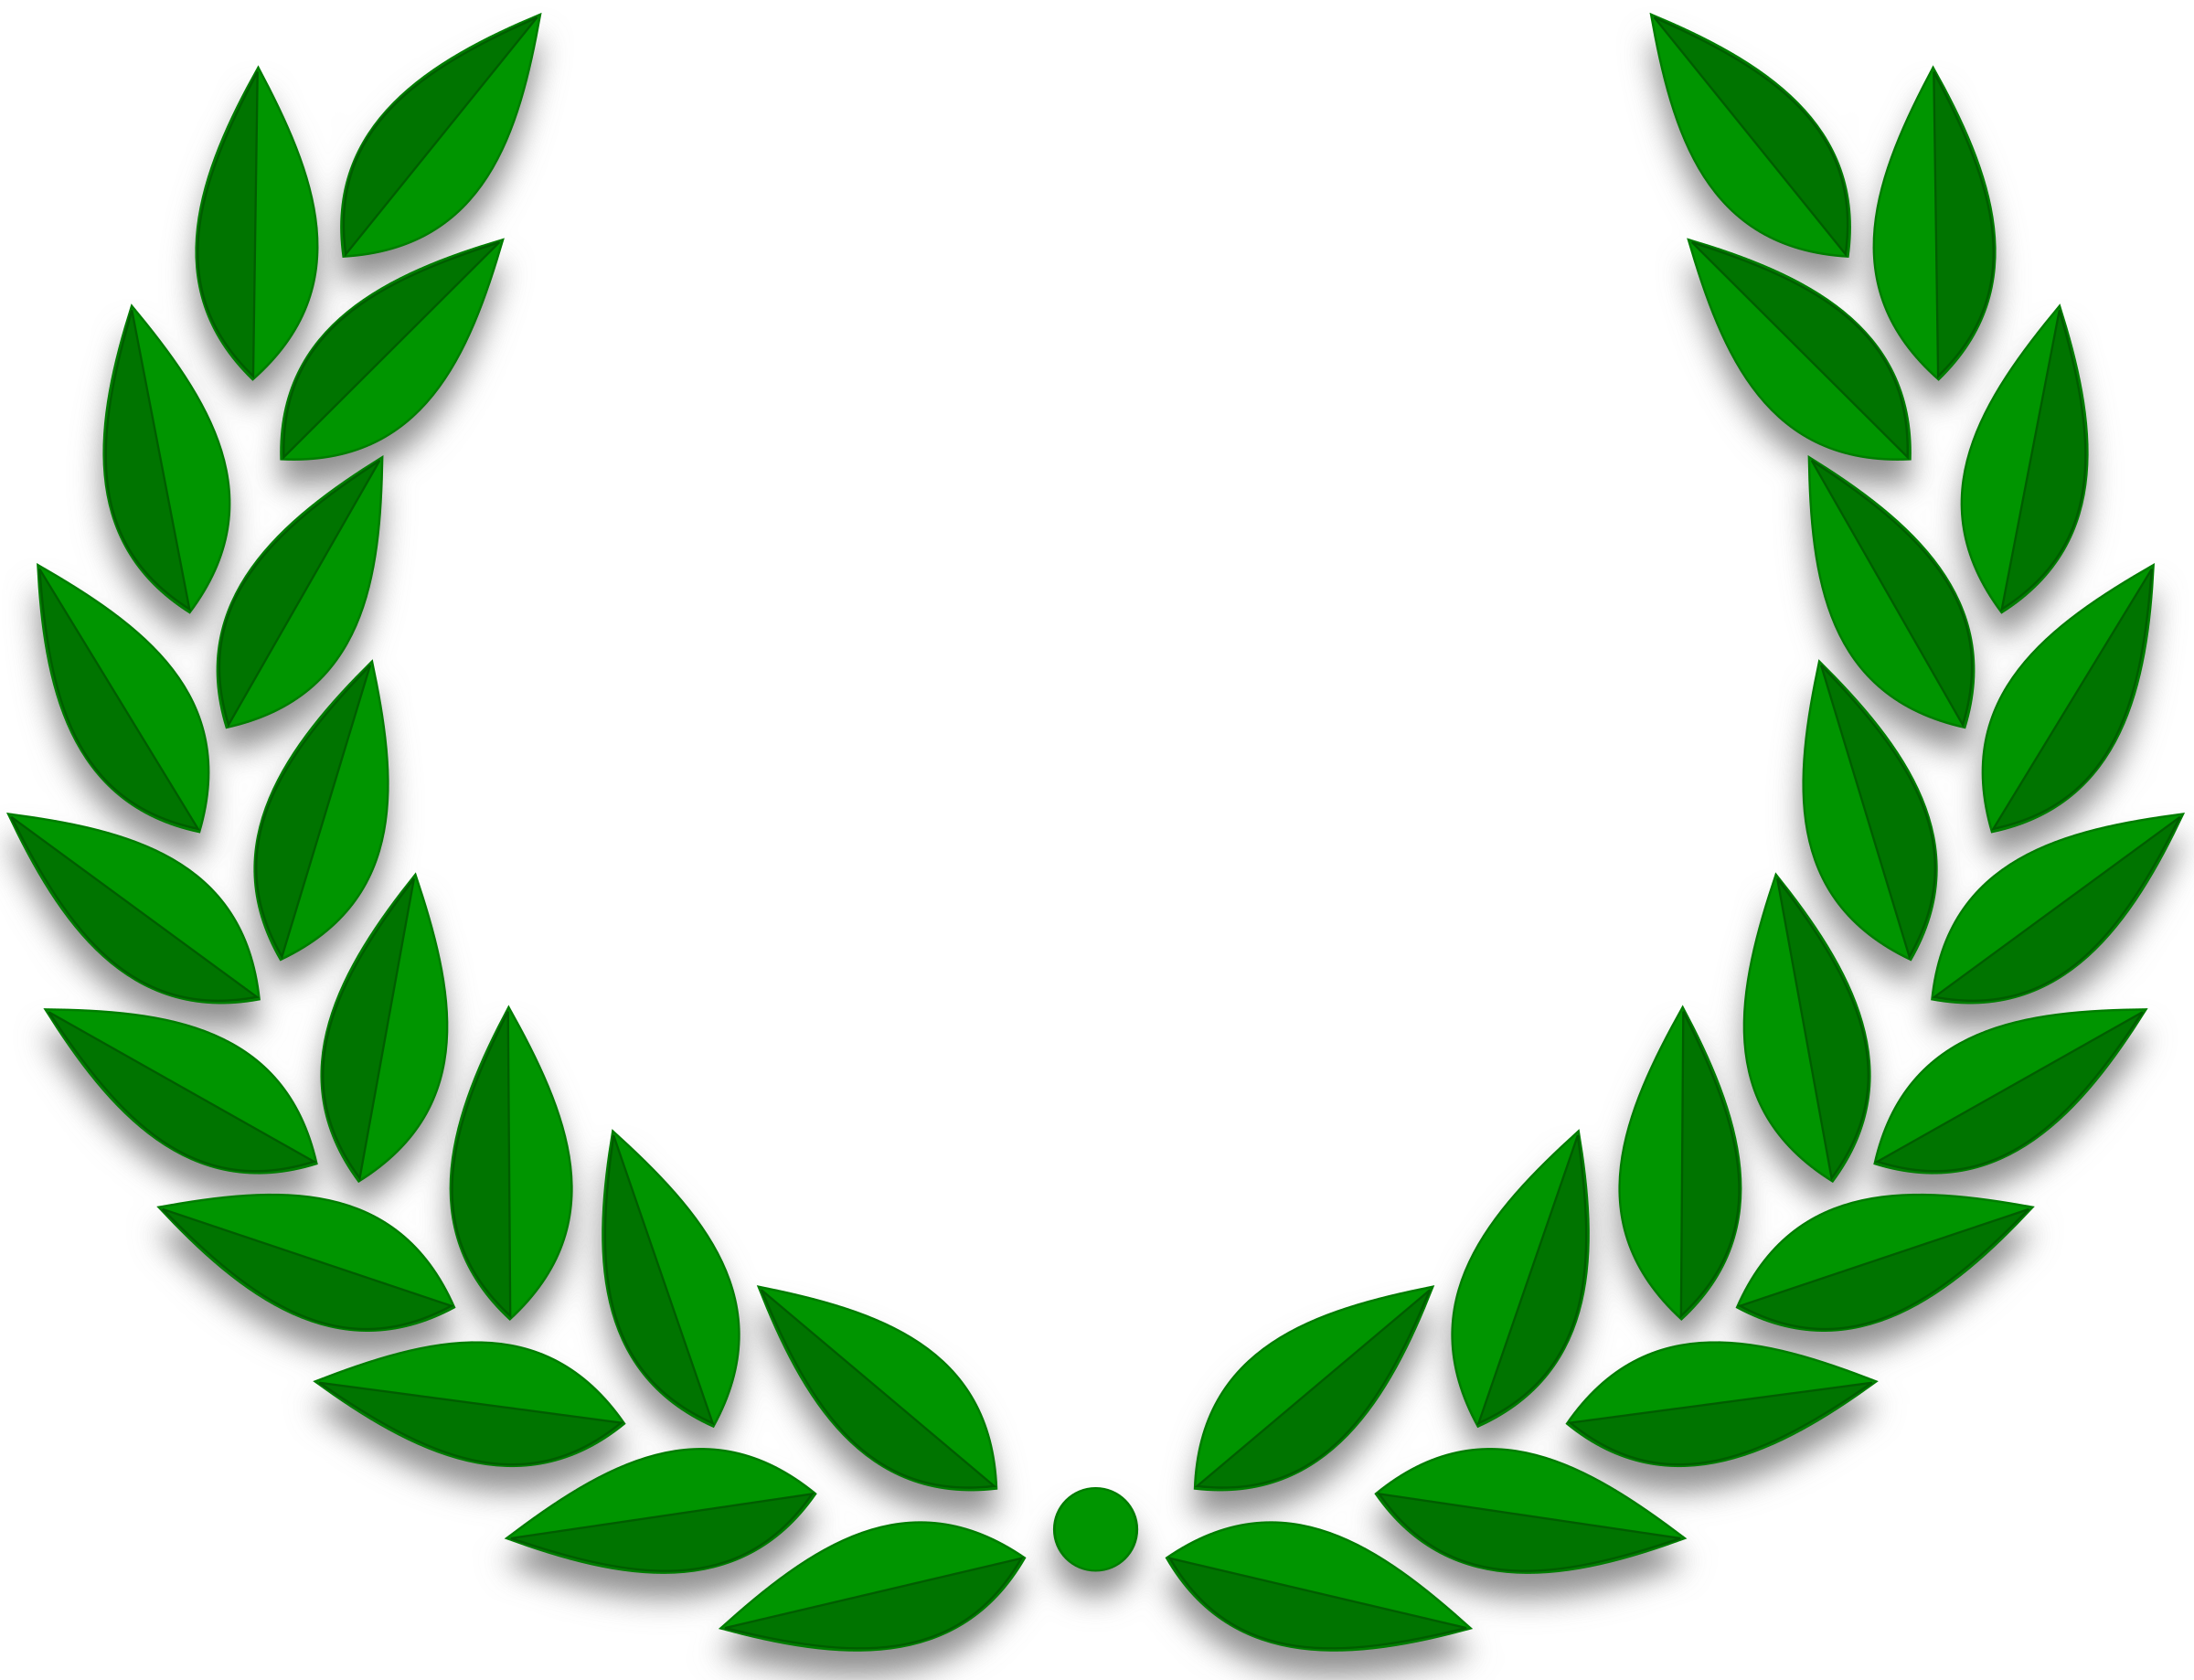 Laurel wreath by zeimusu